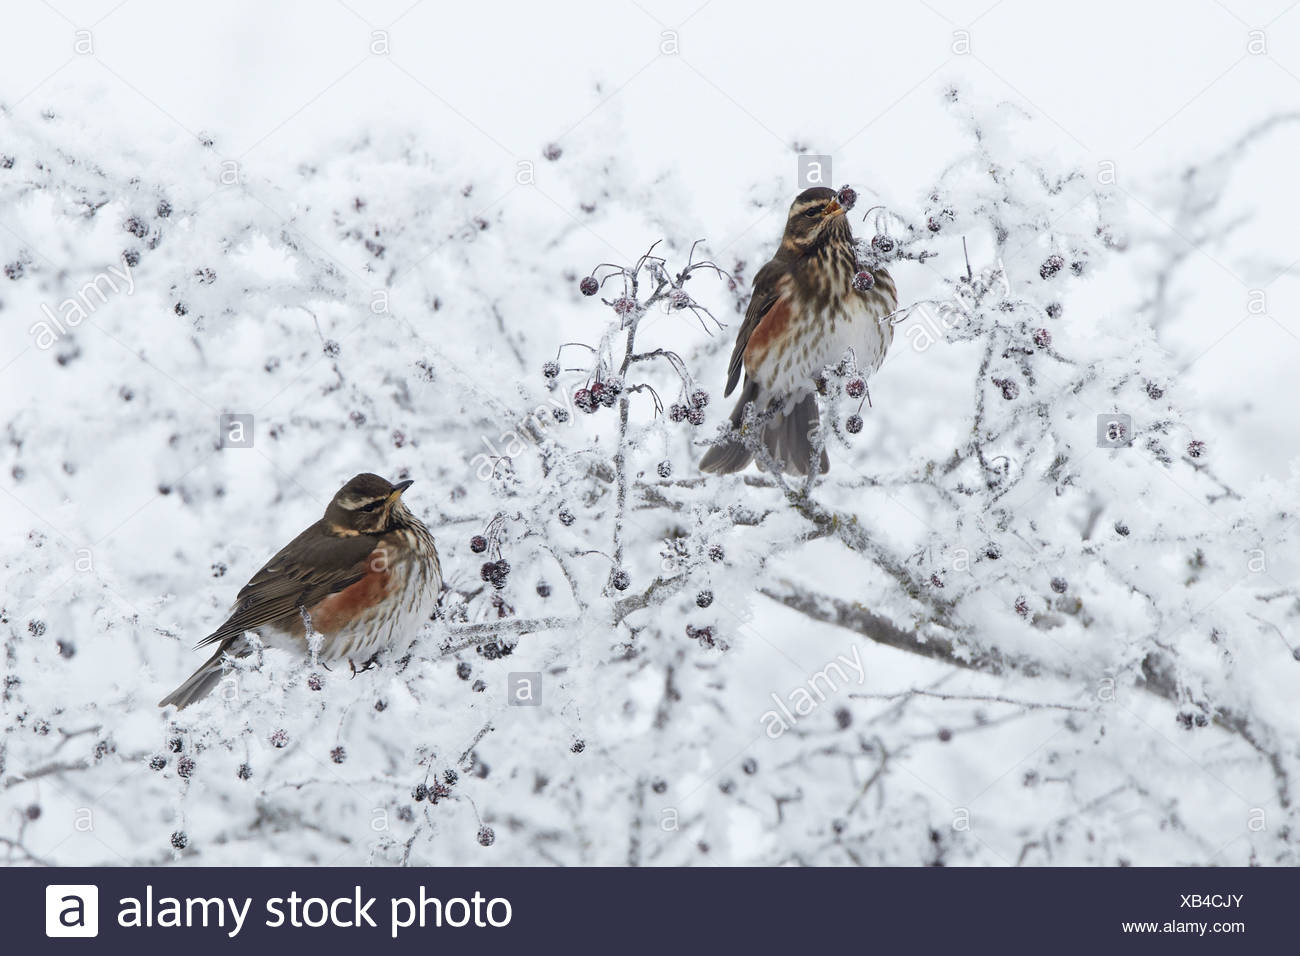 Redwing (Turdus iliacus) two adults, feeding on hawthorn berries in hoar fost covered hedgerow, Shropshire, England, winter Stock Photo